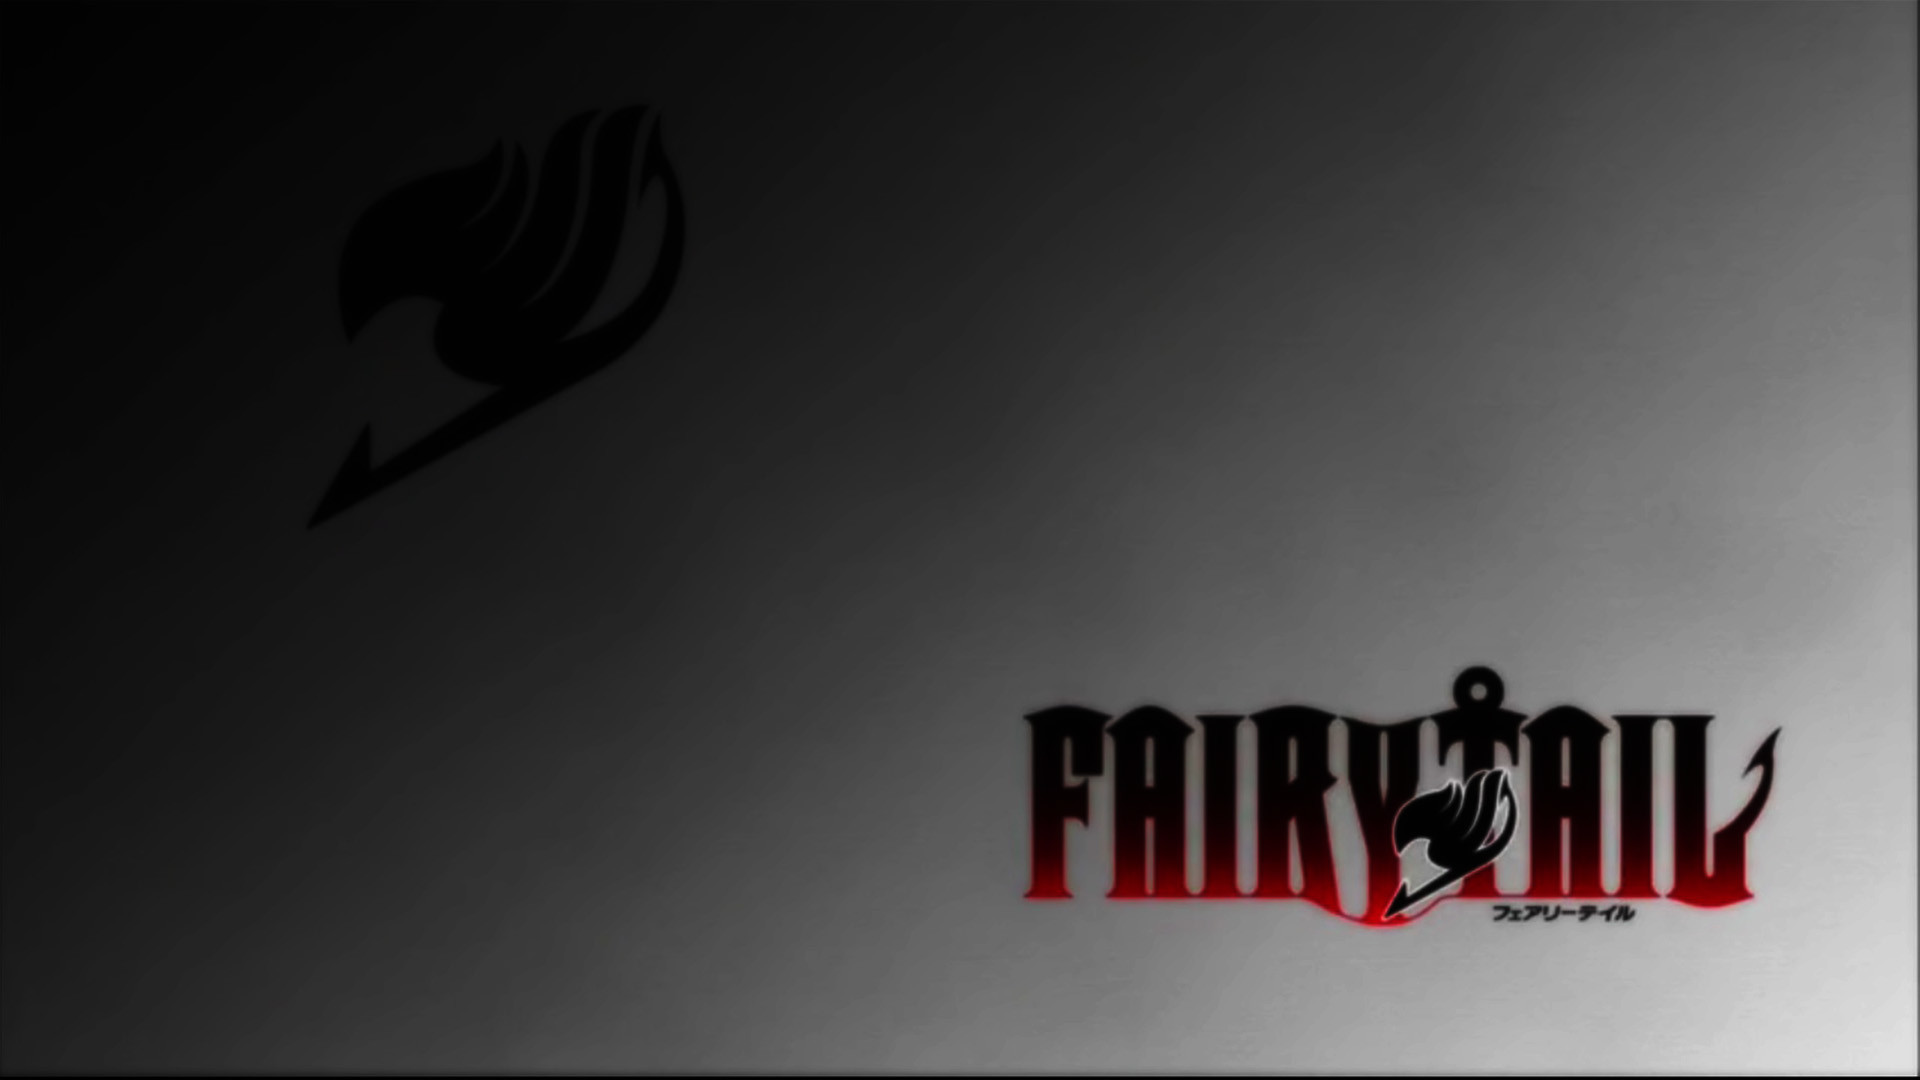 1920x1080 270 Fairy Tail HD Wallpapers Backgrounds Wallpaper Abyss - HD Wallpapers